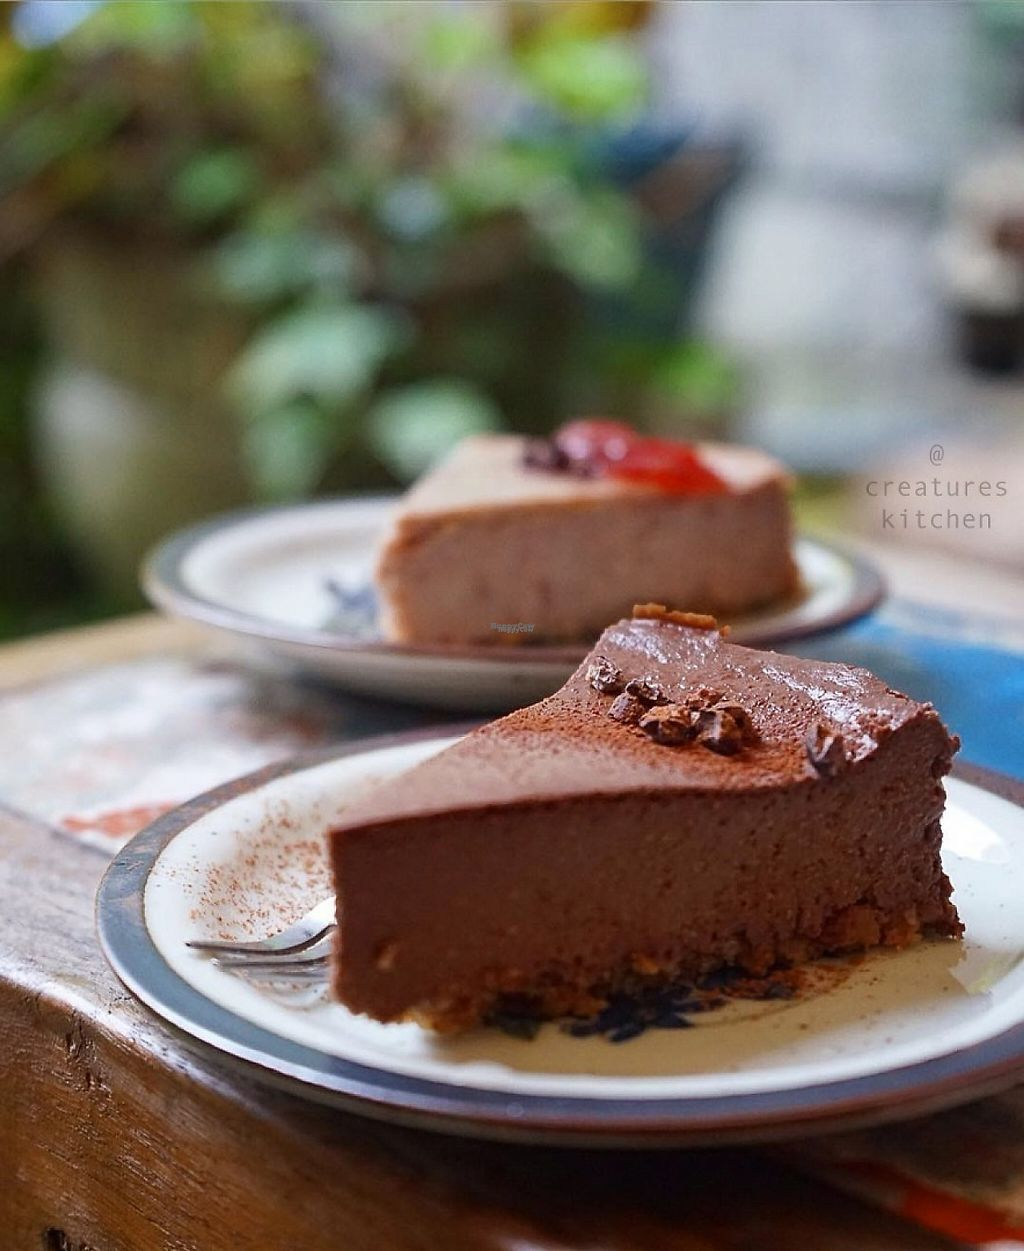 """Photo of CLOSED: Le Coccole  by <a href=""""/members/profile/EmmaCebuliak"""">EmmaCebuliak</a> <br/>Vegan chocolate mouse cake and strawberry cheese cake.  <br/> February 7, 2017  - <a href='/contact/abuse/image/25584/223962'>Report</a>"""